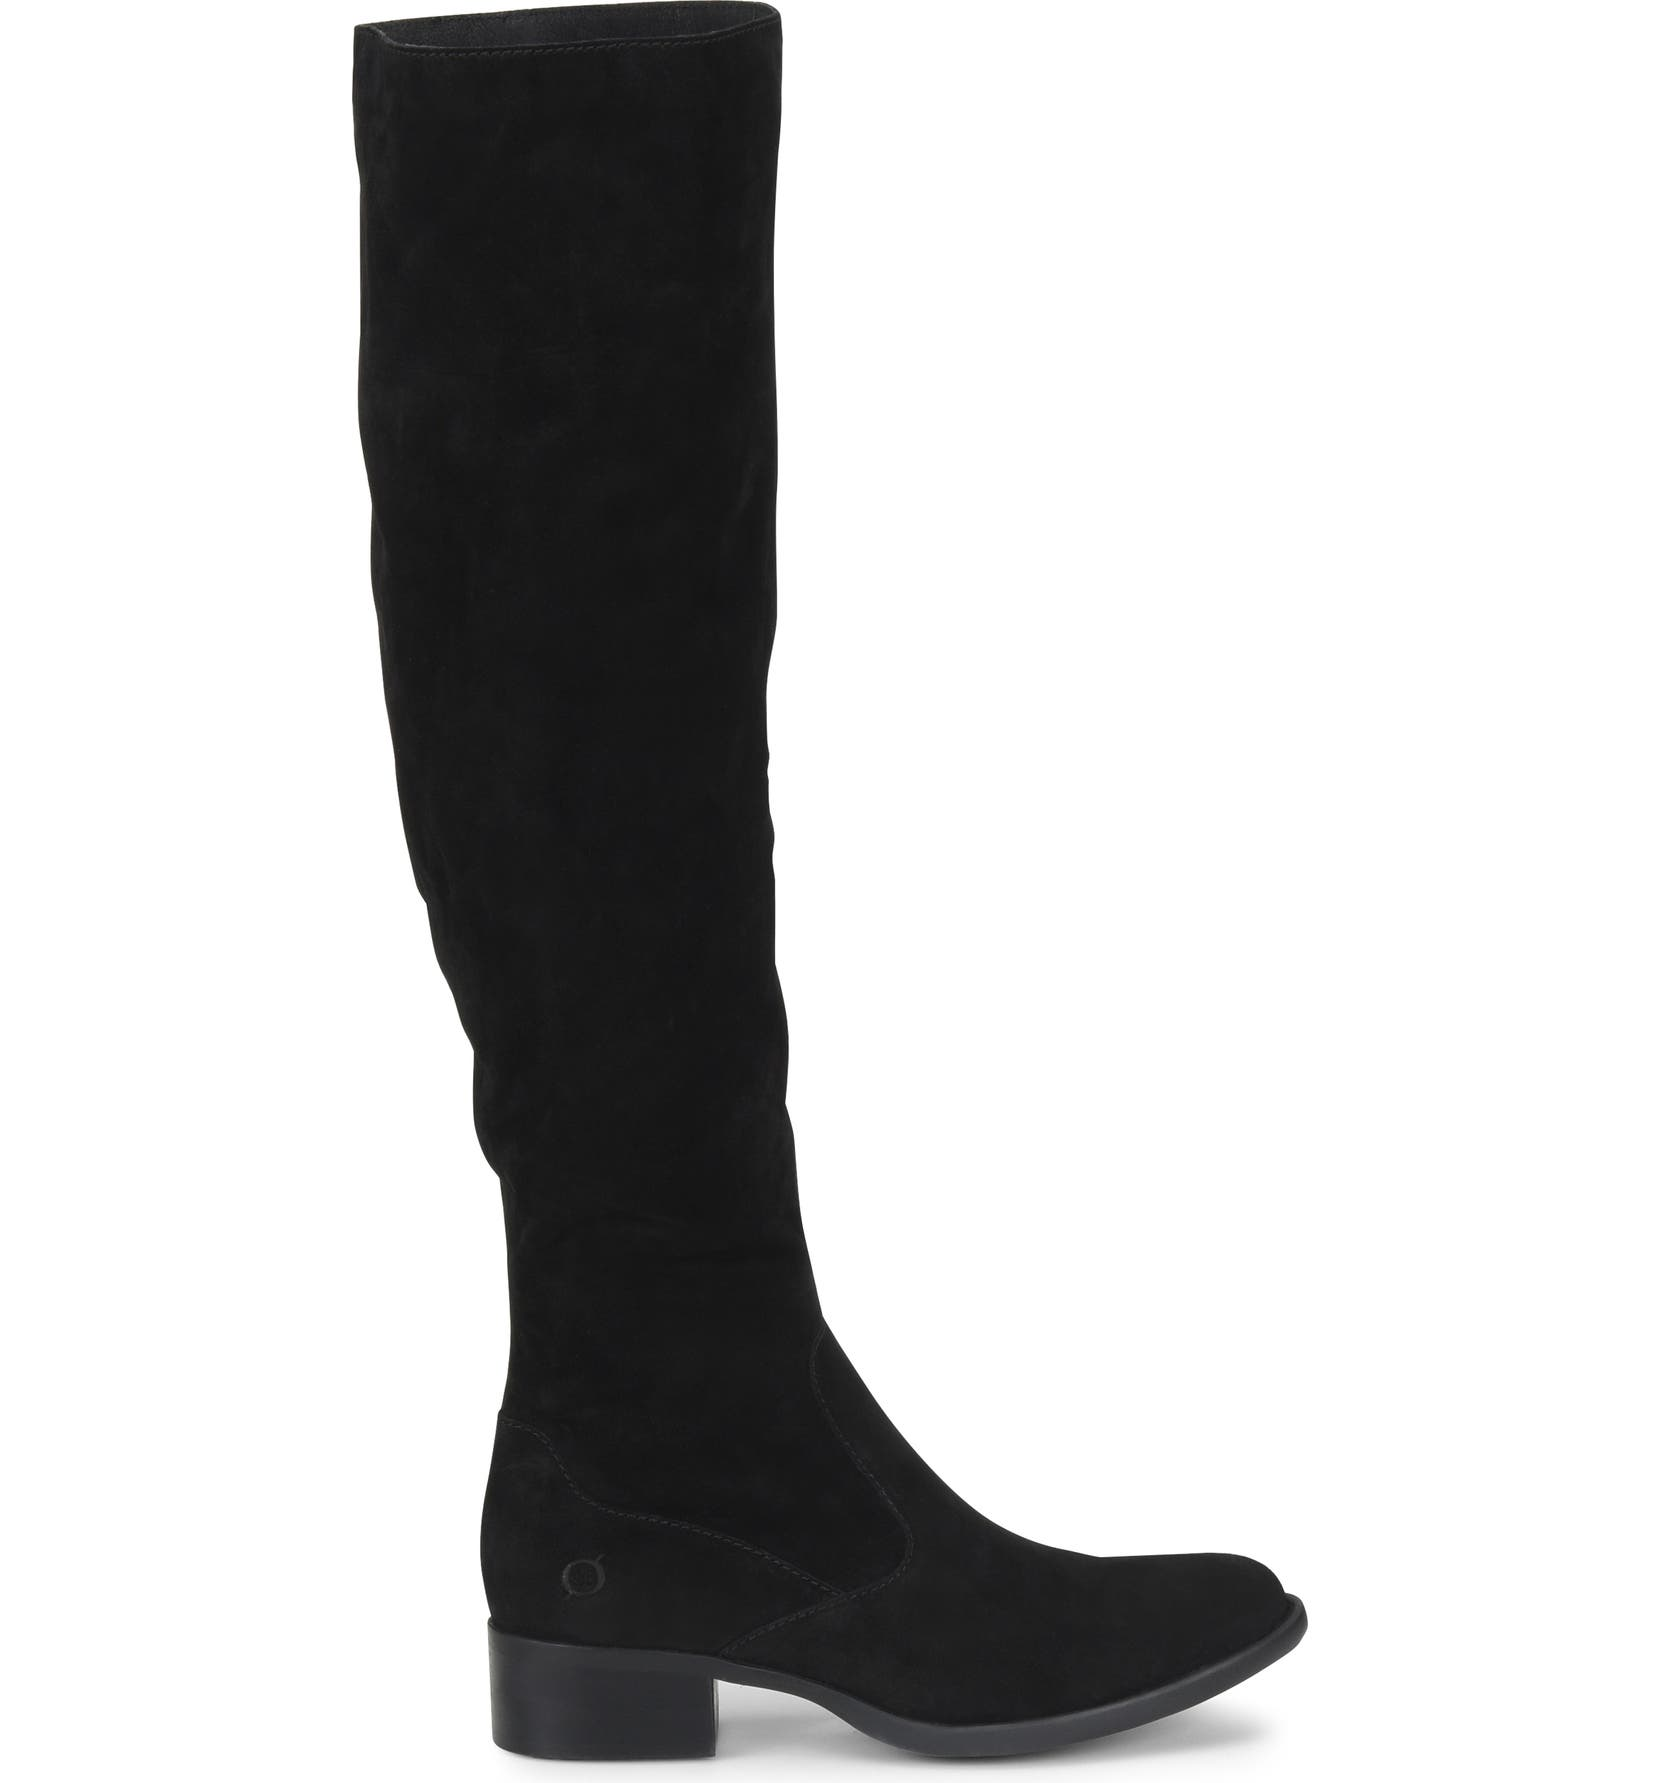 7a49781850b Cricket Over the Knee Boot